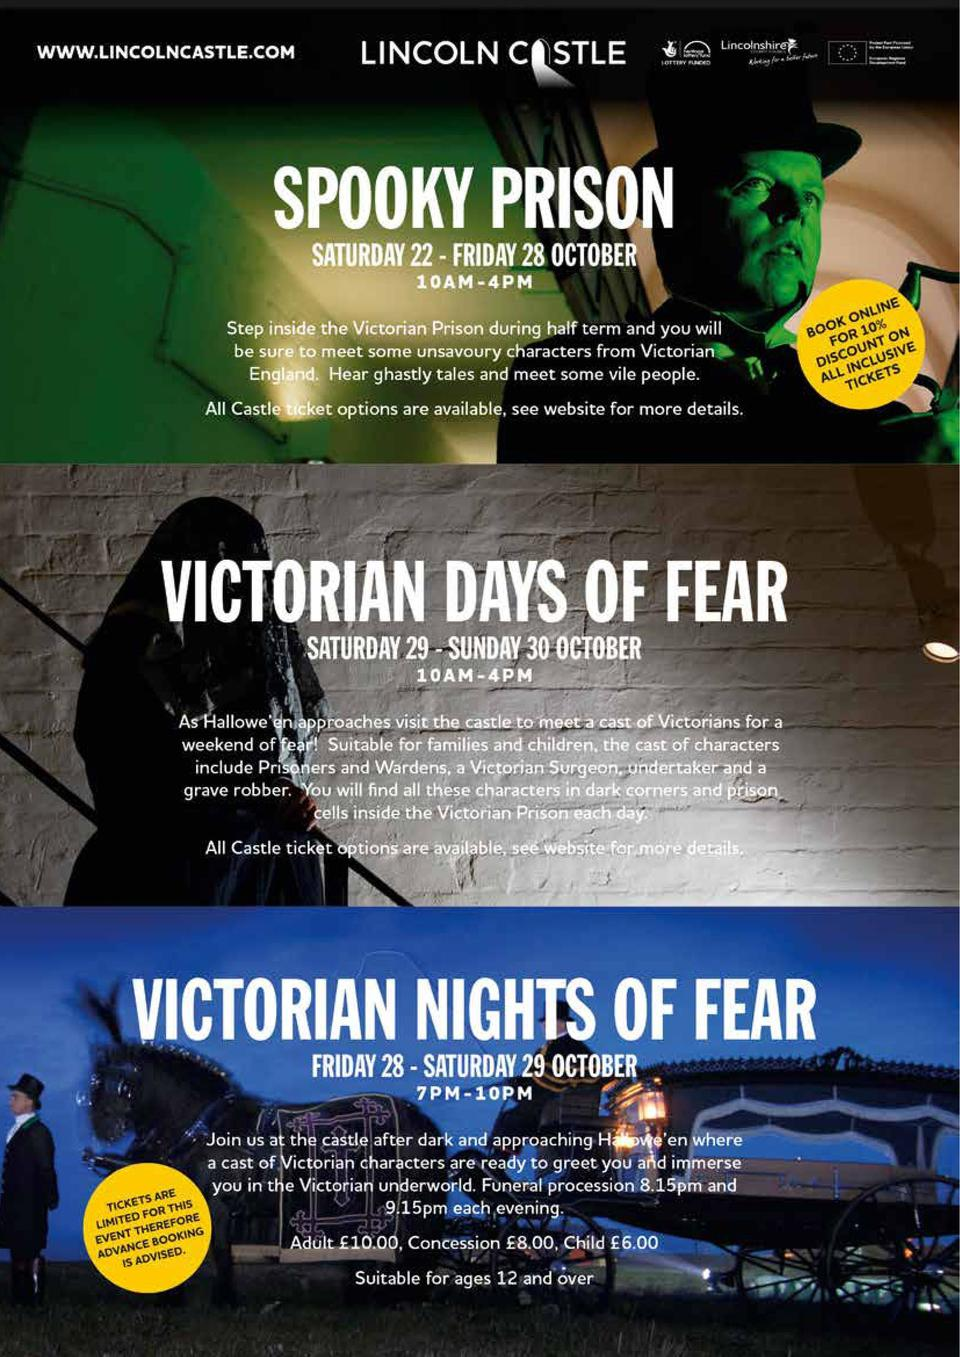 ENTERTAINMENT  Spooky goings on at Lincoln Castle this October   This autumn half term  Saturday 22nd to Friday 28th Octob...